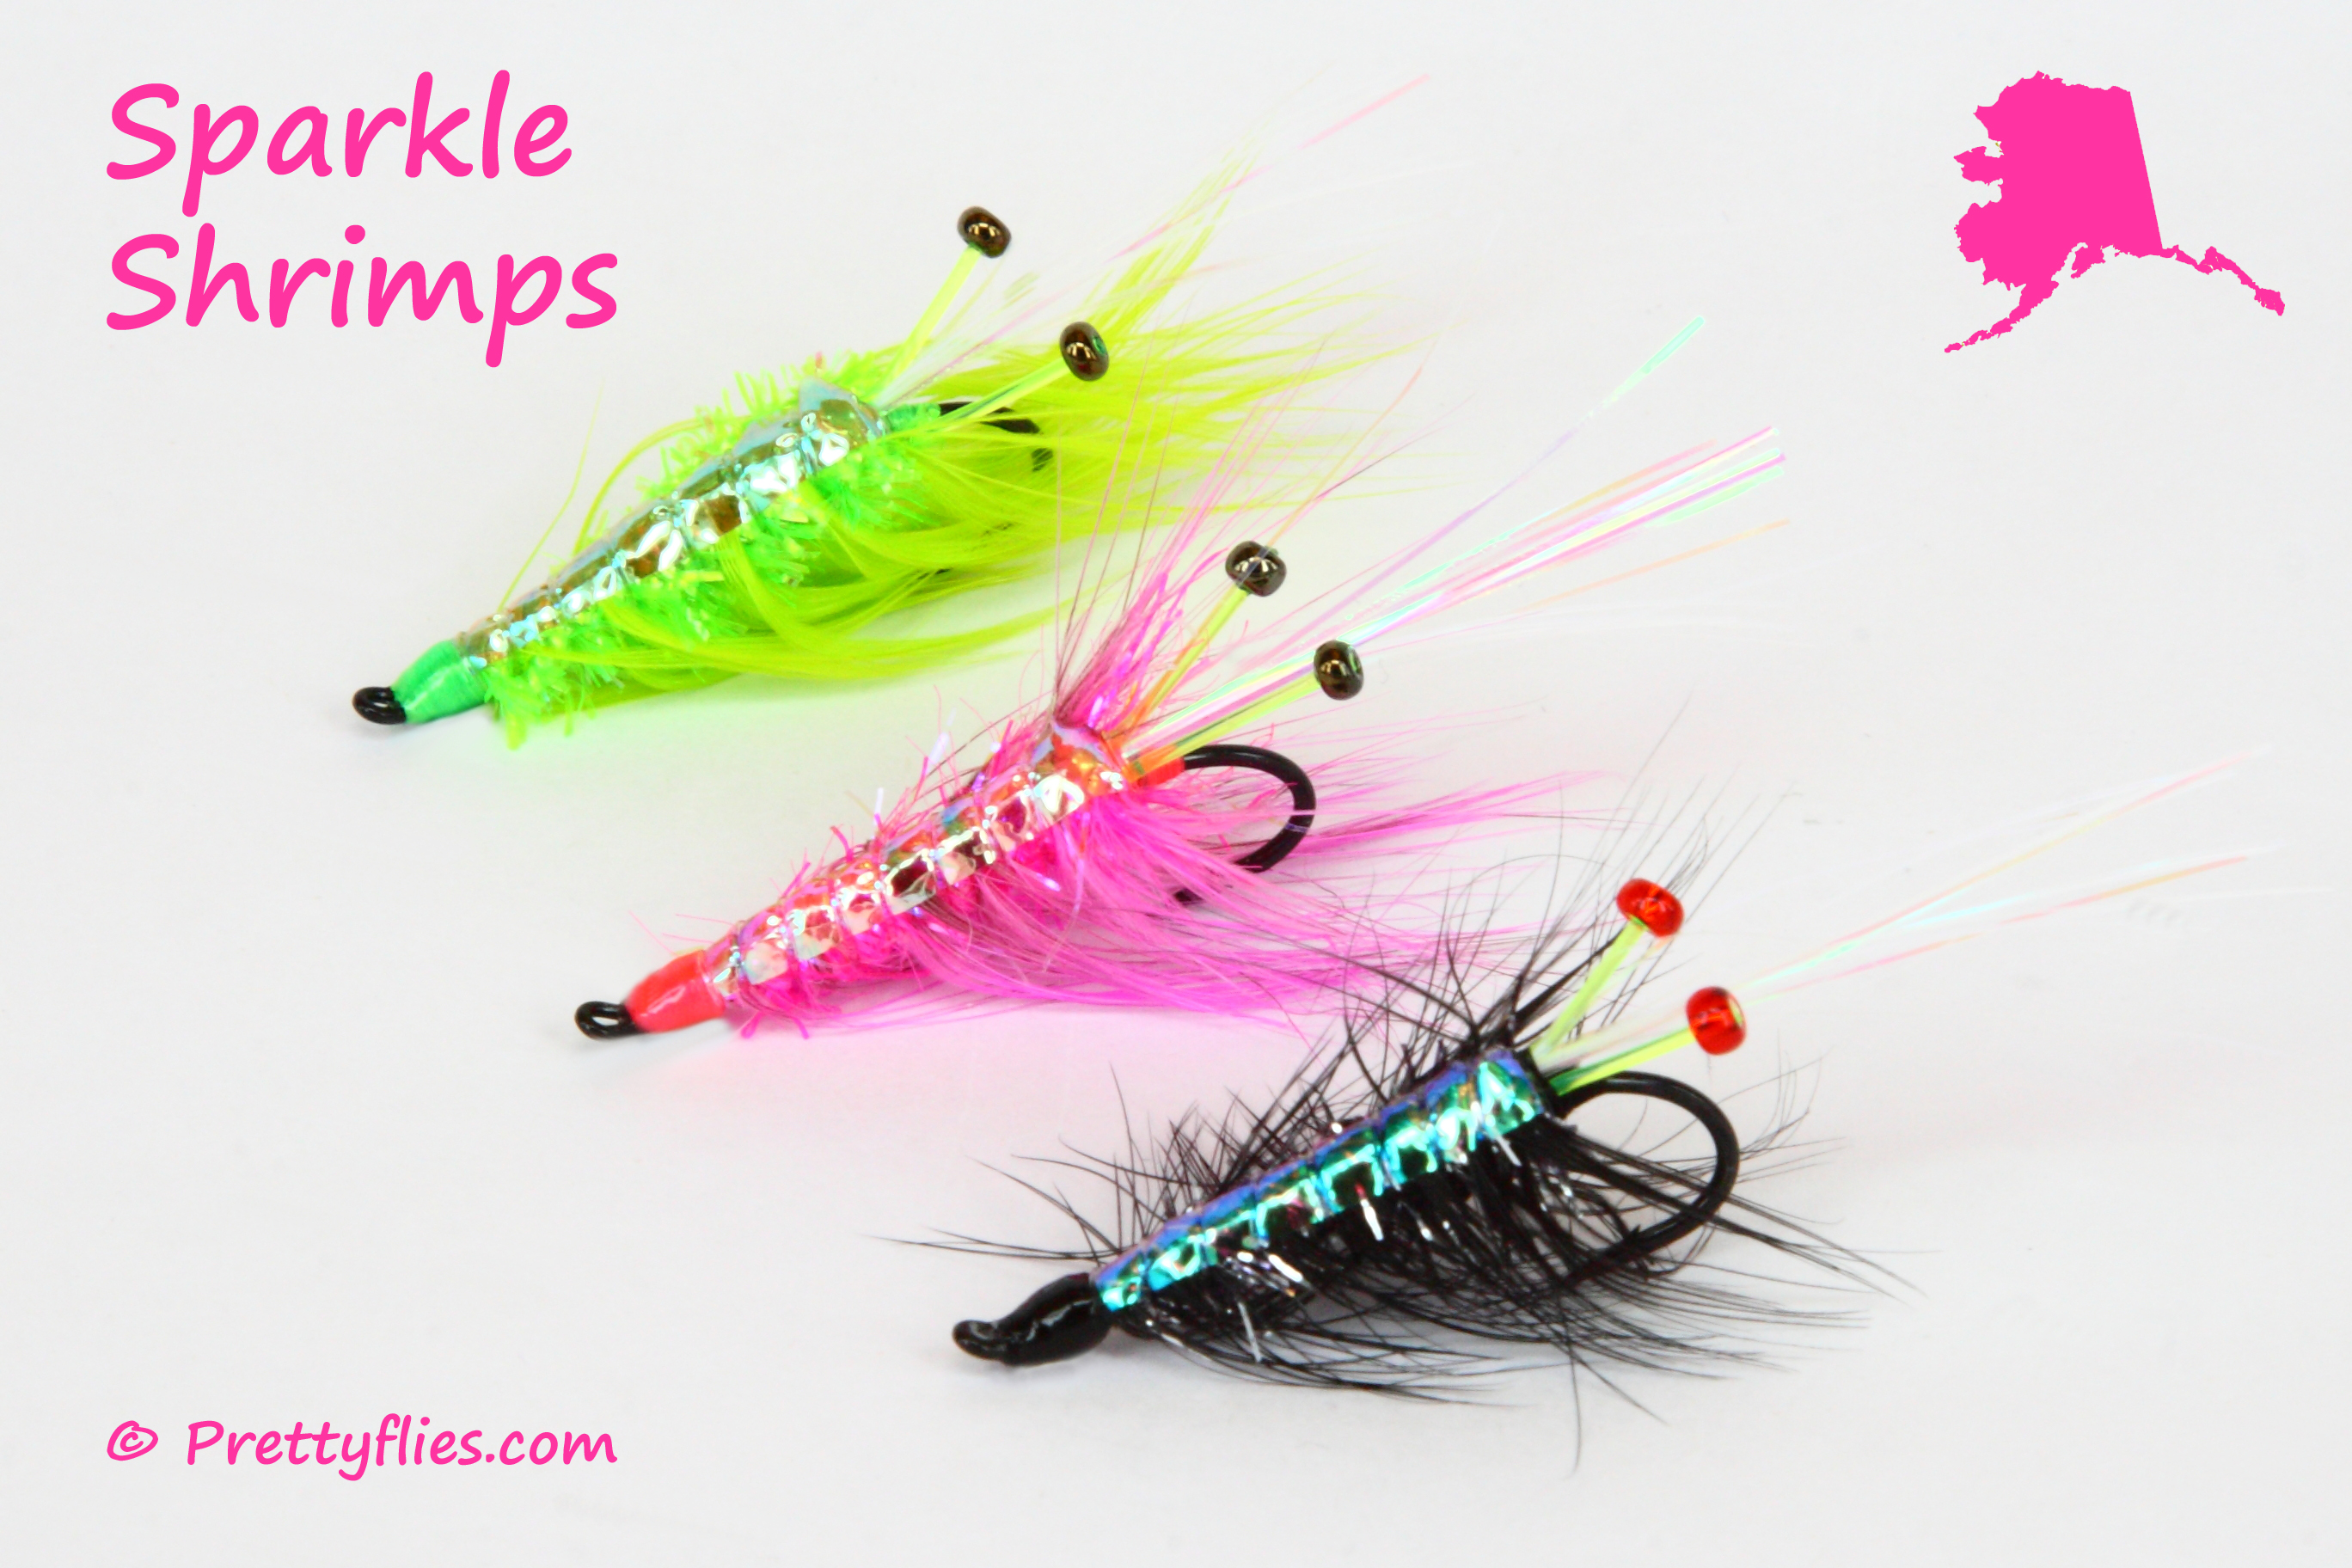 Sparkle Shrimps.jpg